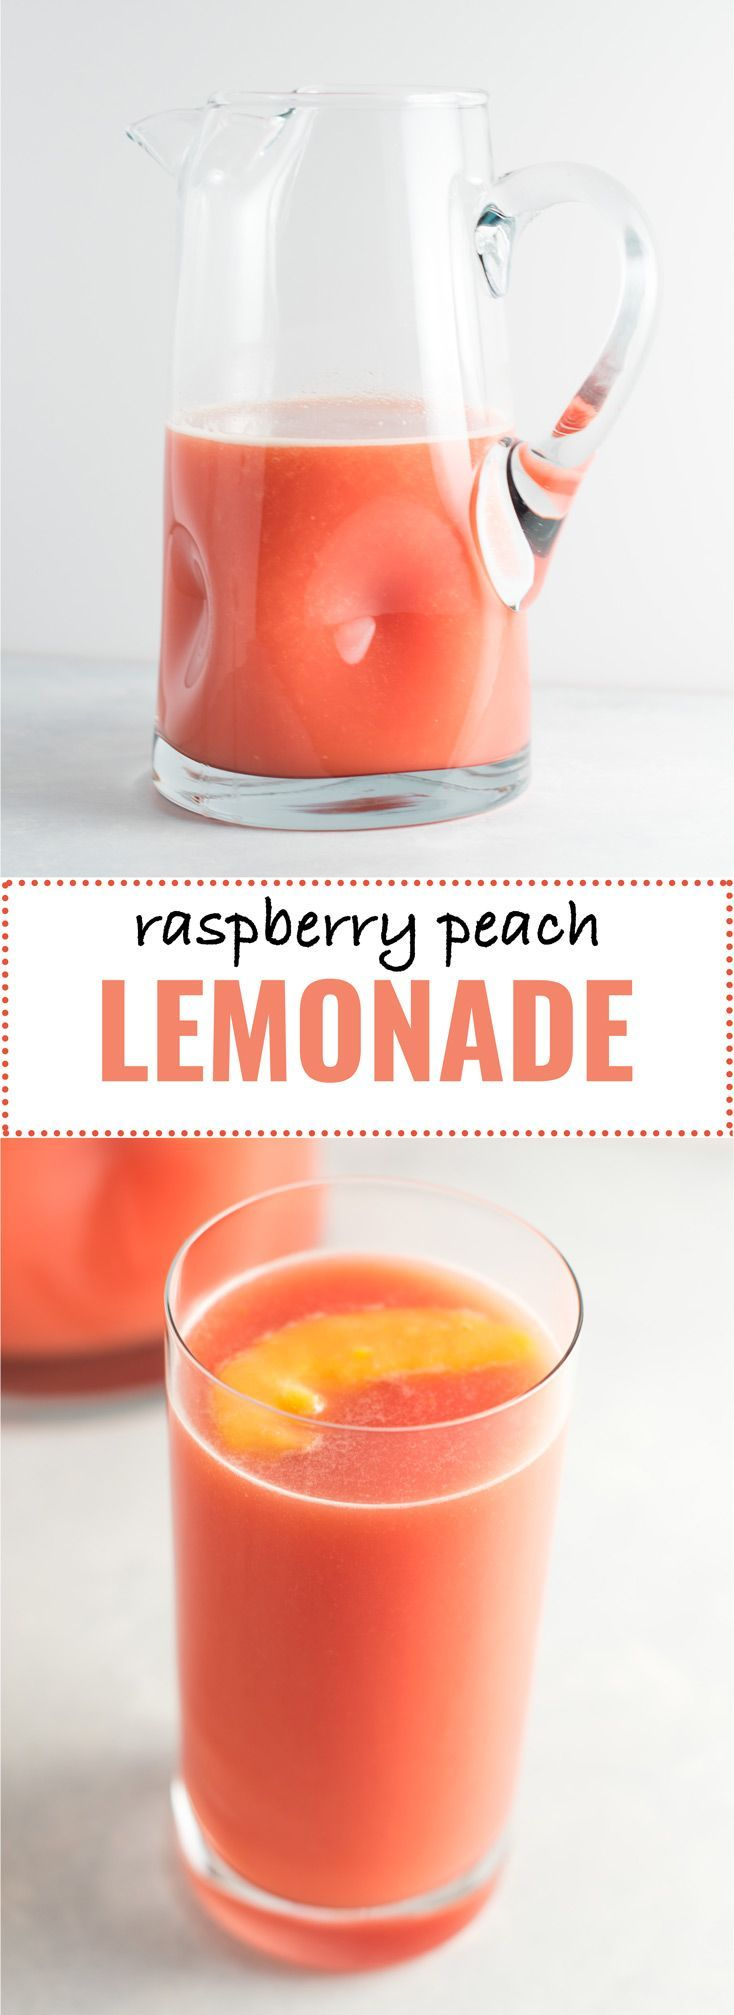 Fresh raspberry peach lemonade recipe made with lemons, raspberries, peaches, water, and maple syrup. Naturally sweetened and delicious! #lemonade #vegan #raspberrylemonade #peachlemonade